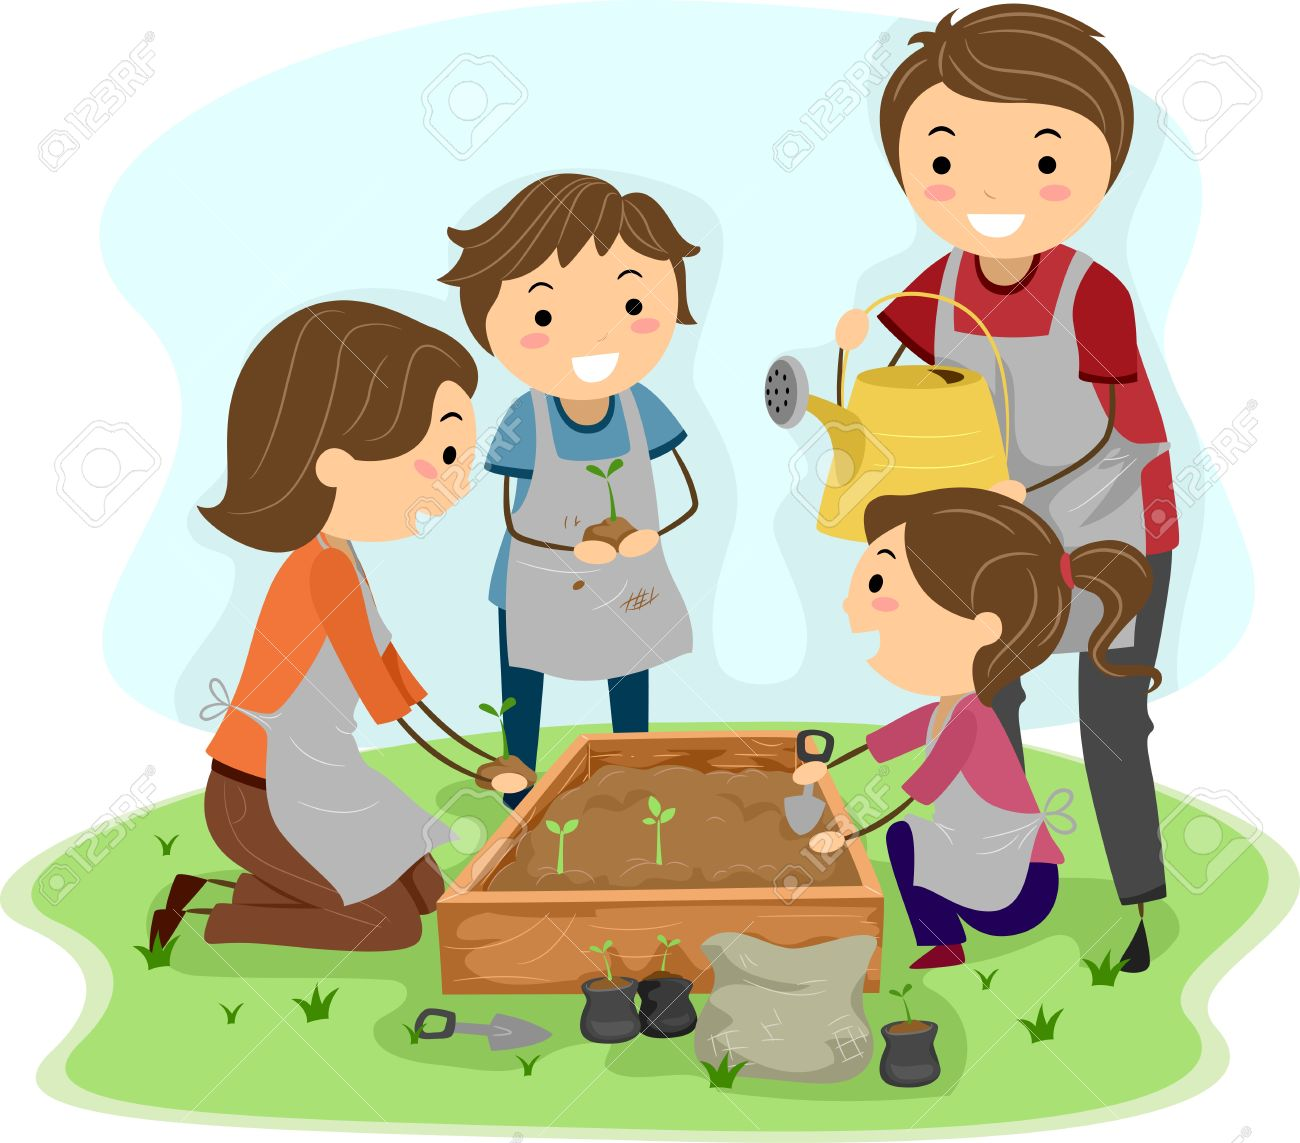 Illustration Of A Family Planting Plants Together Stock Photo.